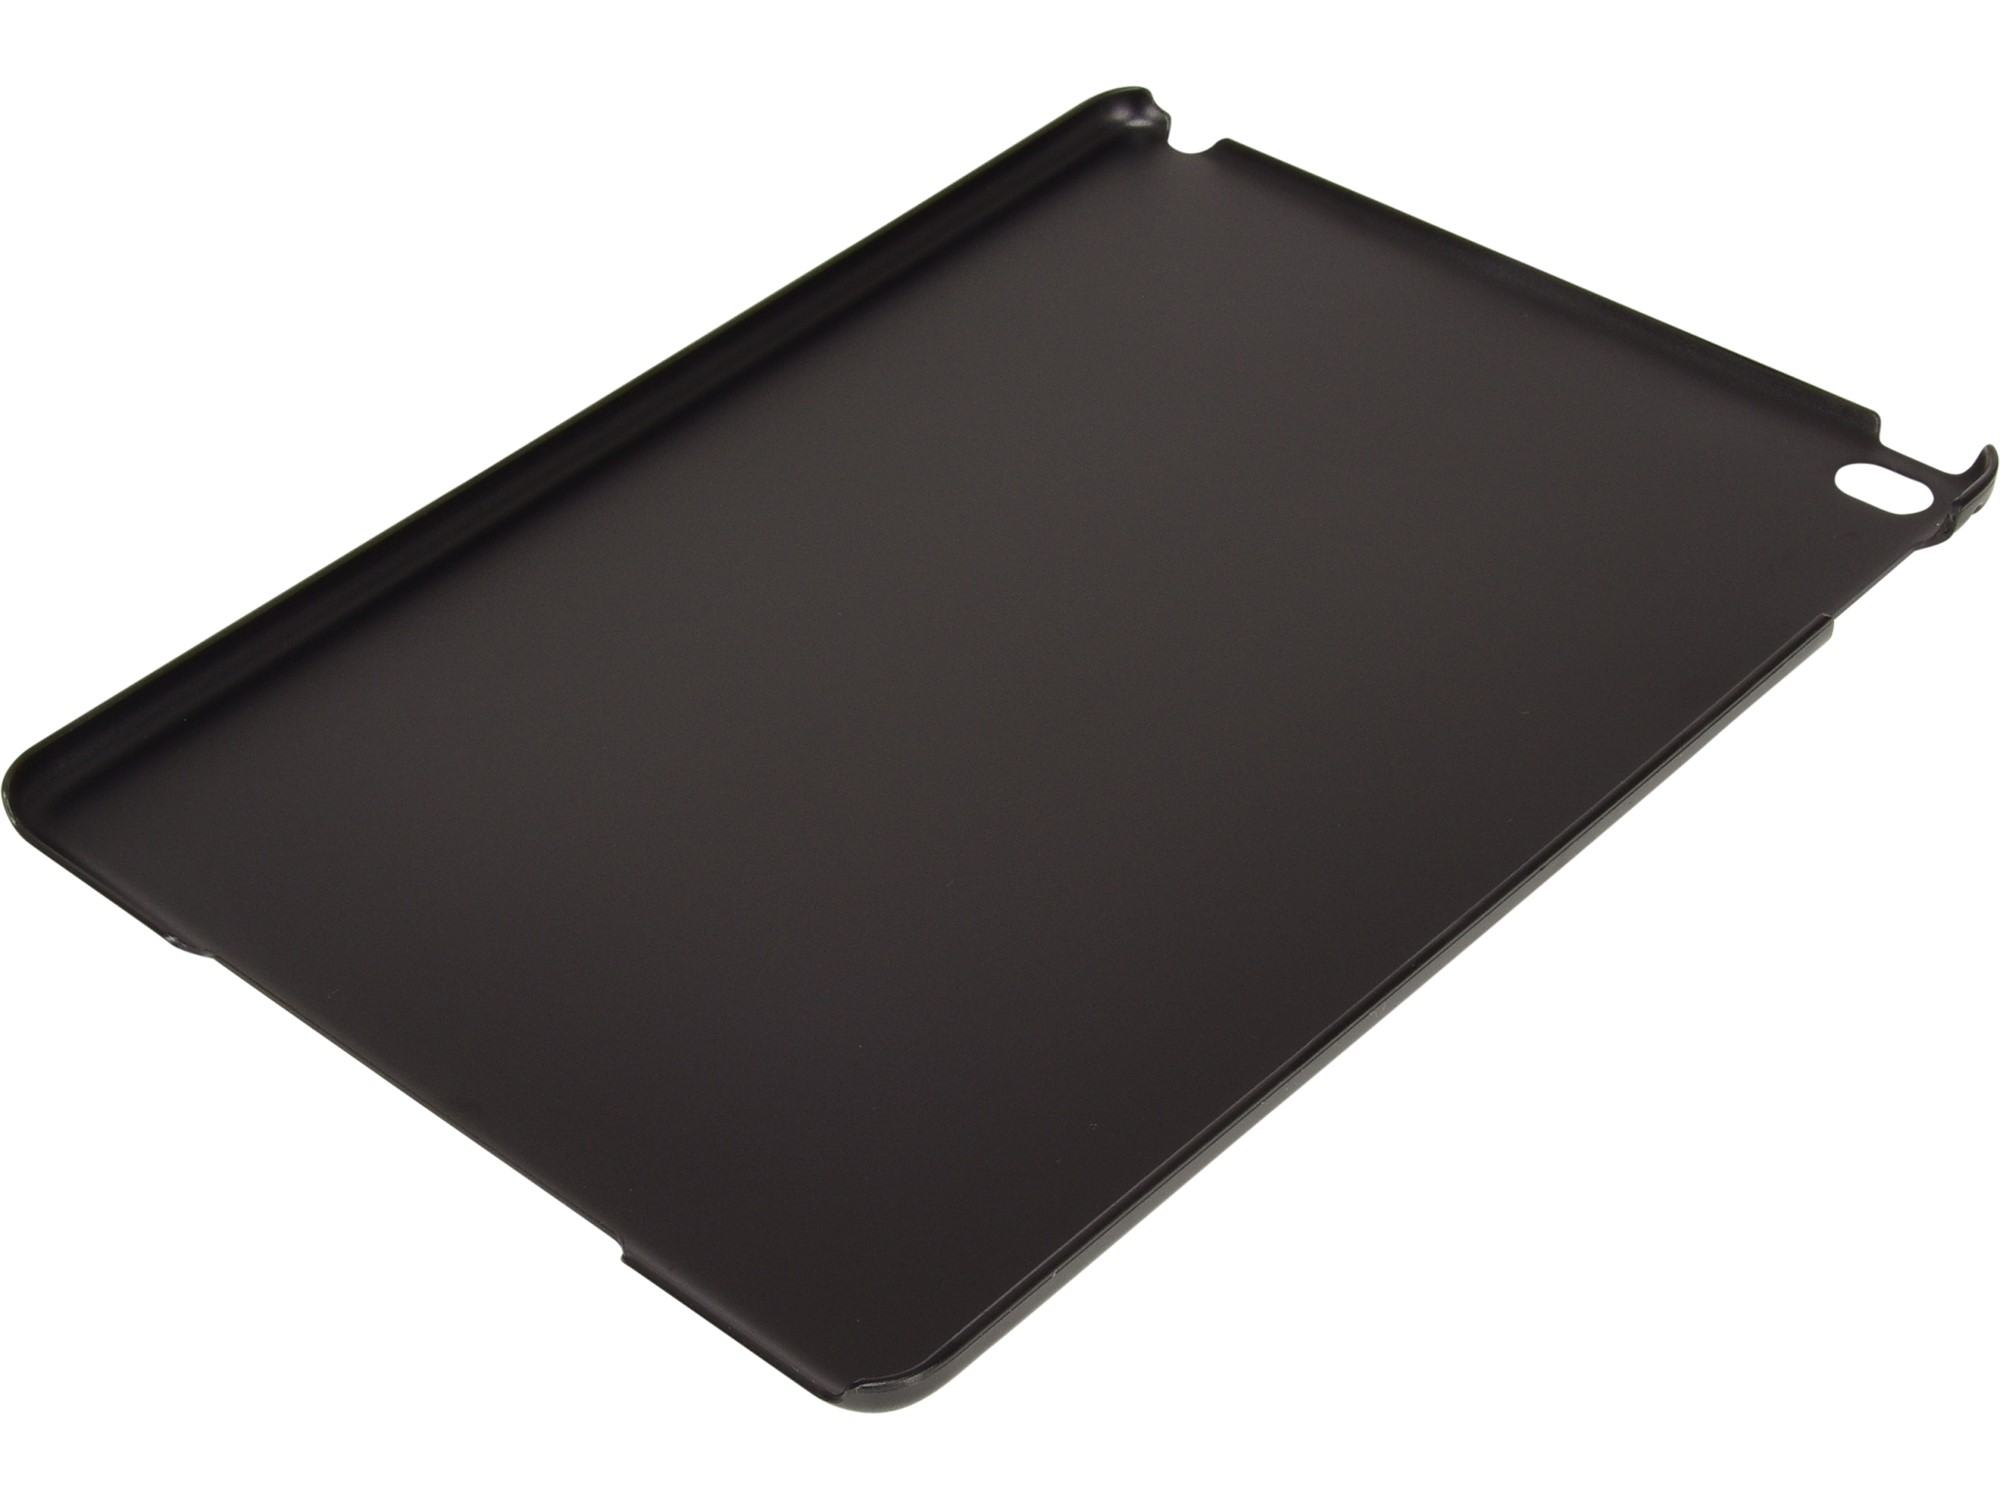 SANDBERG 405-74 COVER IPAD AIR 2 HARD BLACK